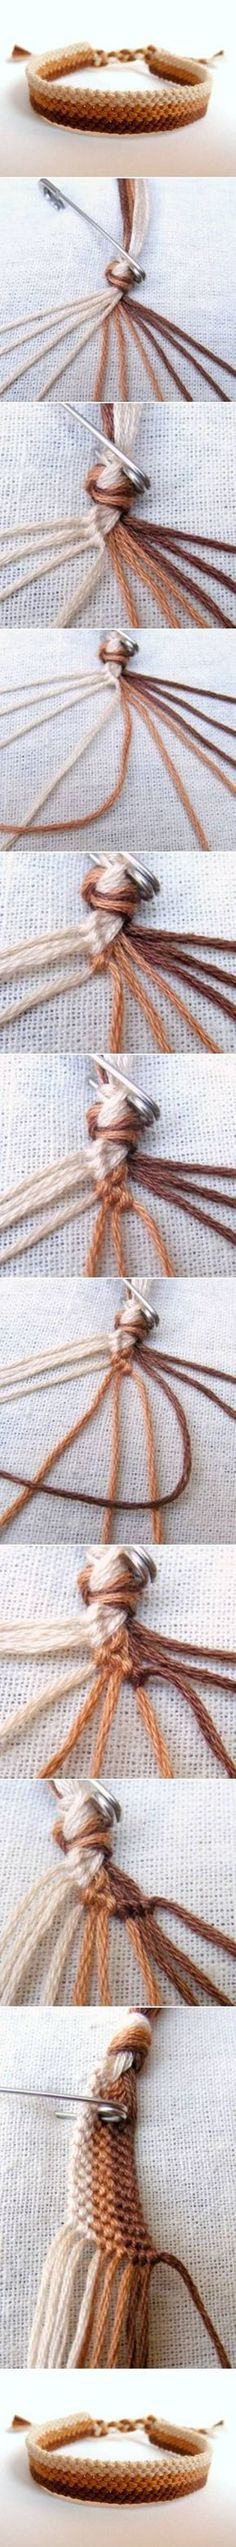 How To Make Easy Weave Bracelet step by step DIY tutorial instructions / How To Instructions